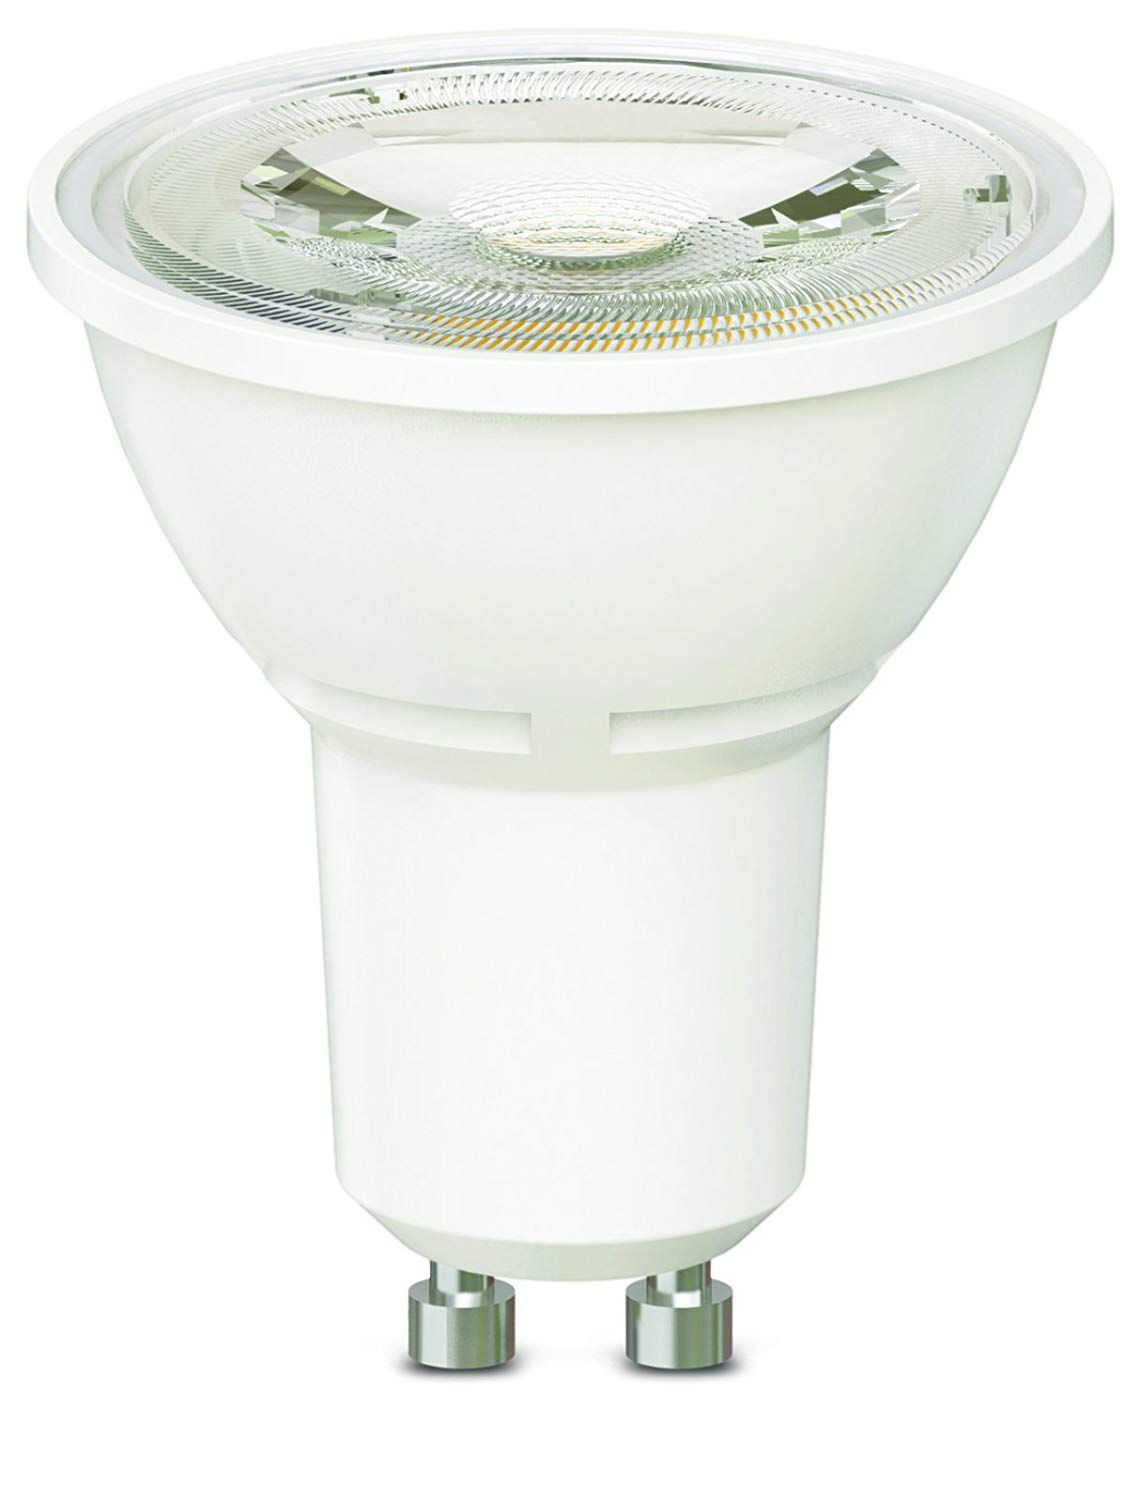 Led Gu10 Next Led 5w 40w Gu10 Cob Led Spot GÜn IŞiĞi